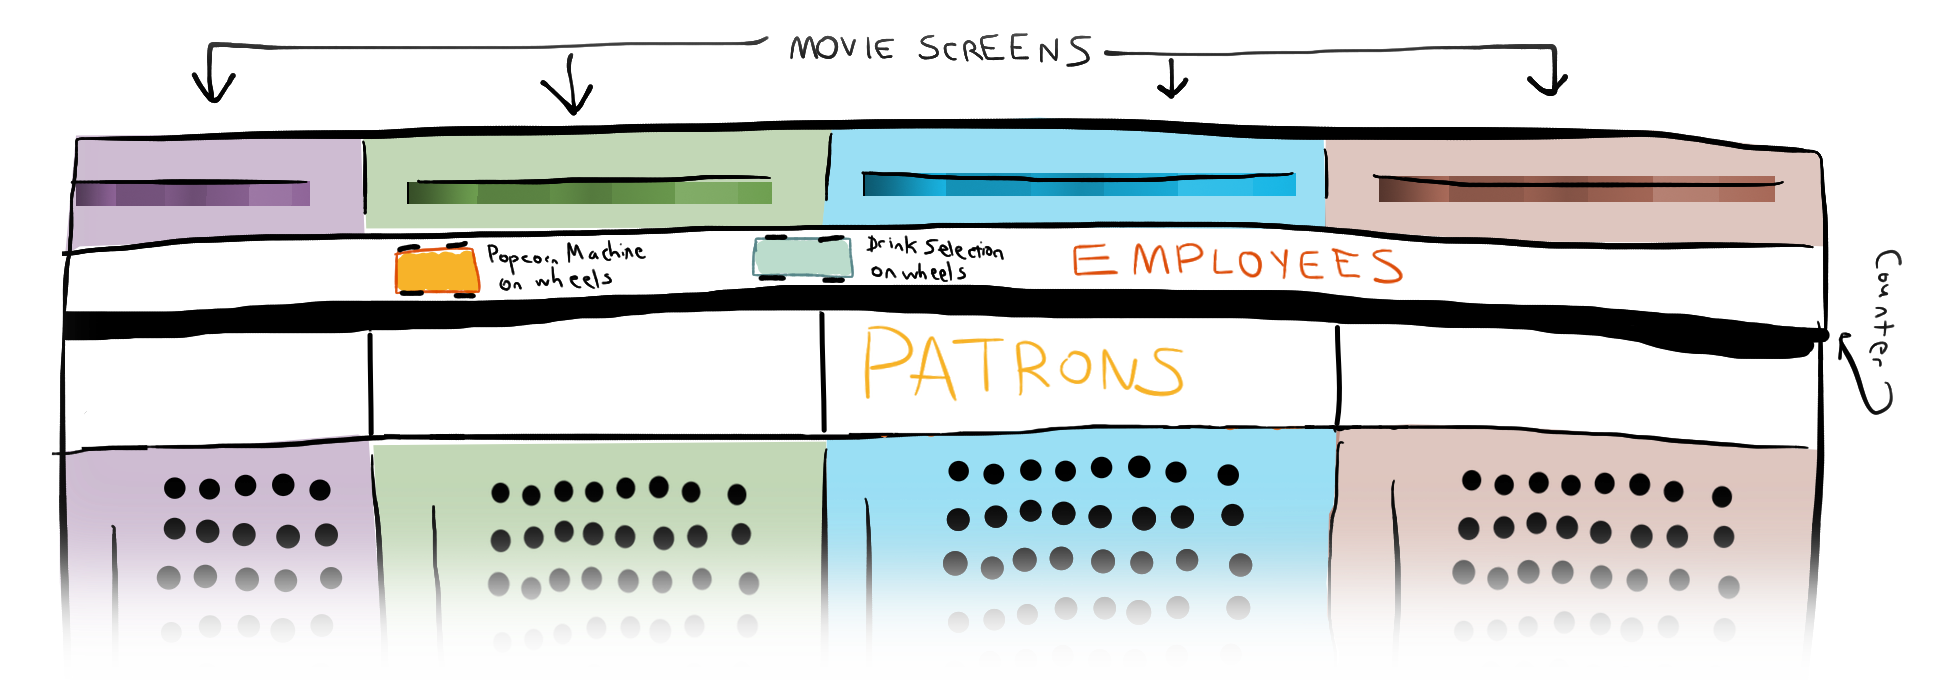 Theater Diagram PNG E.png